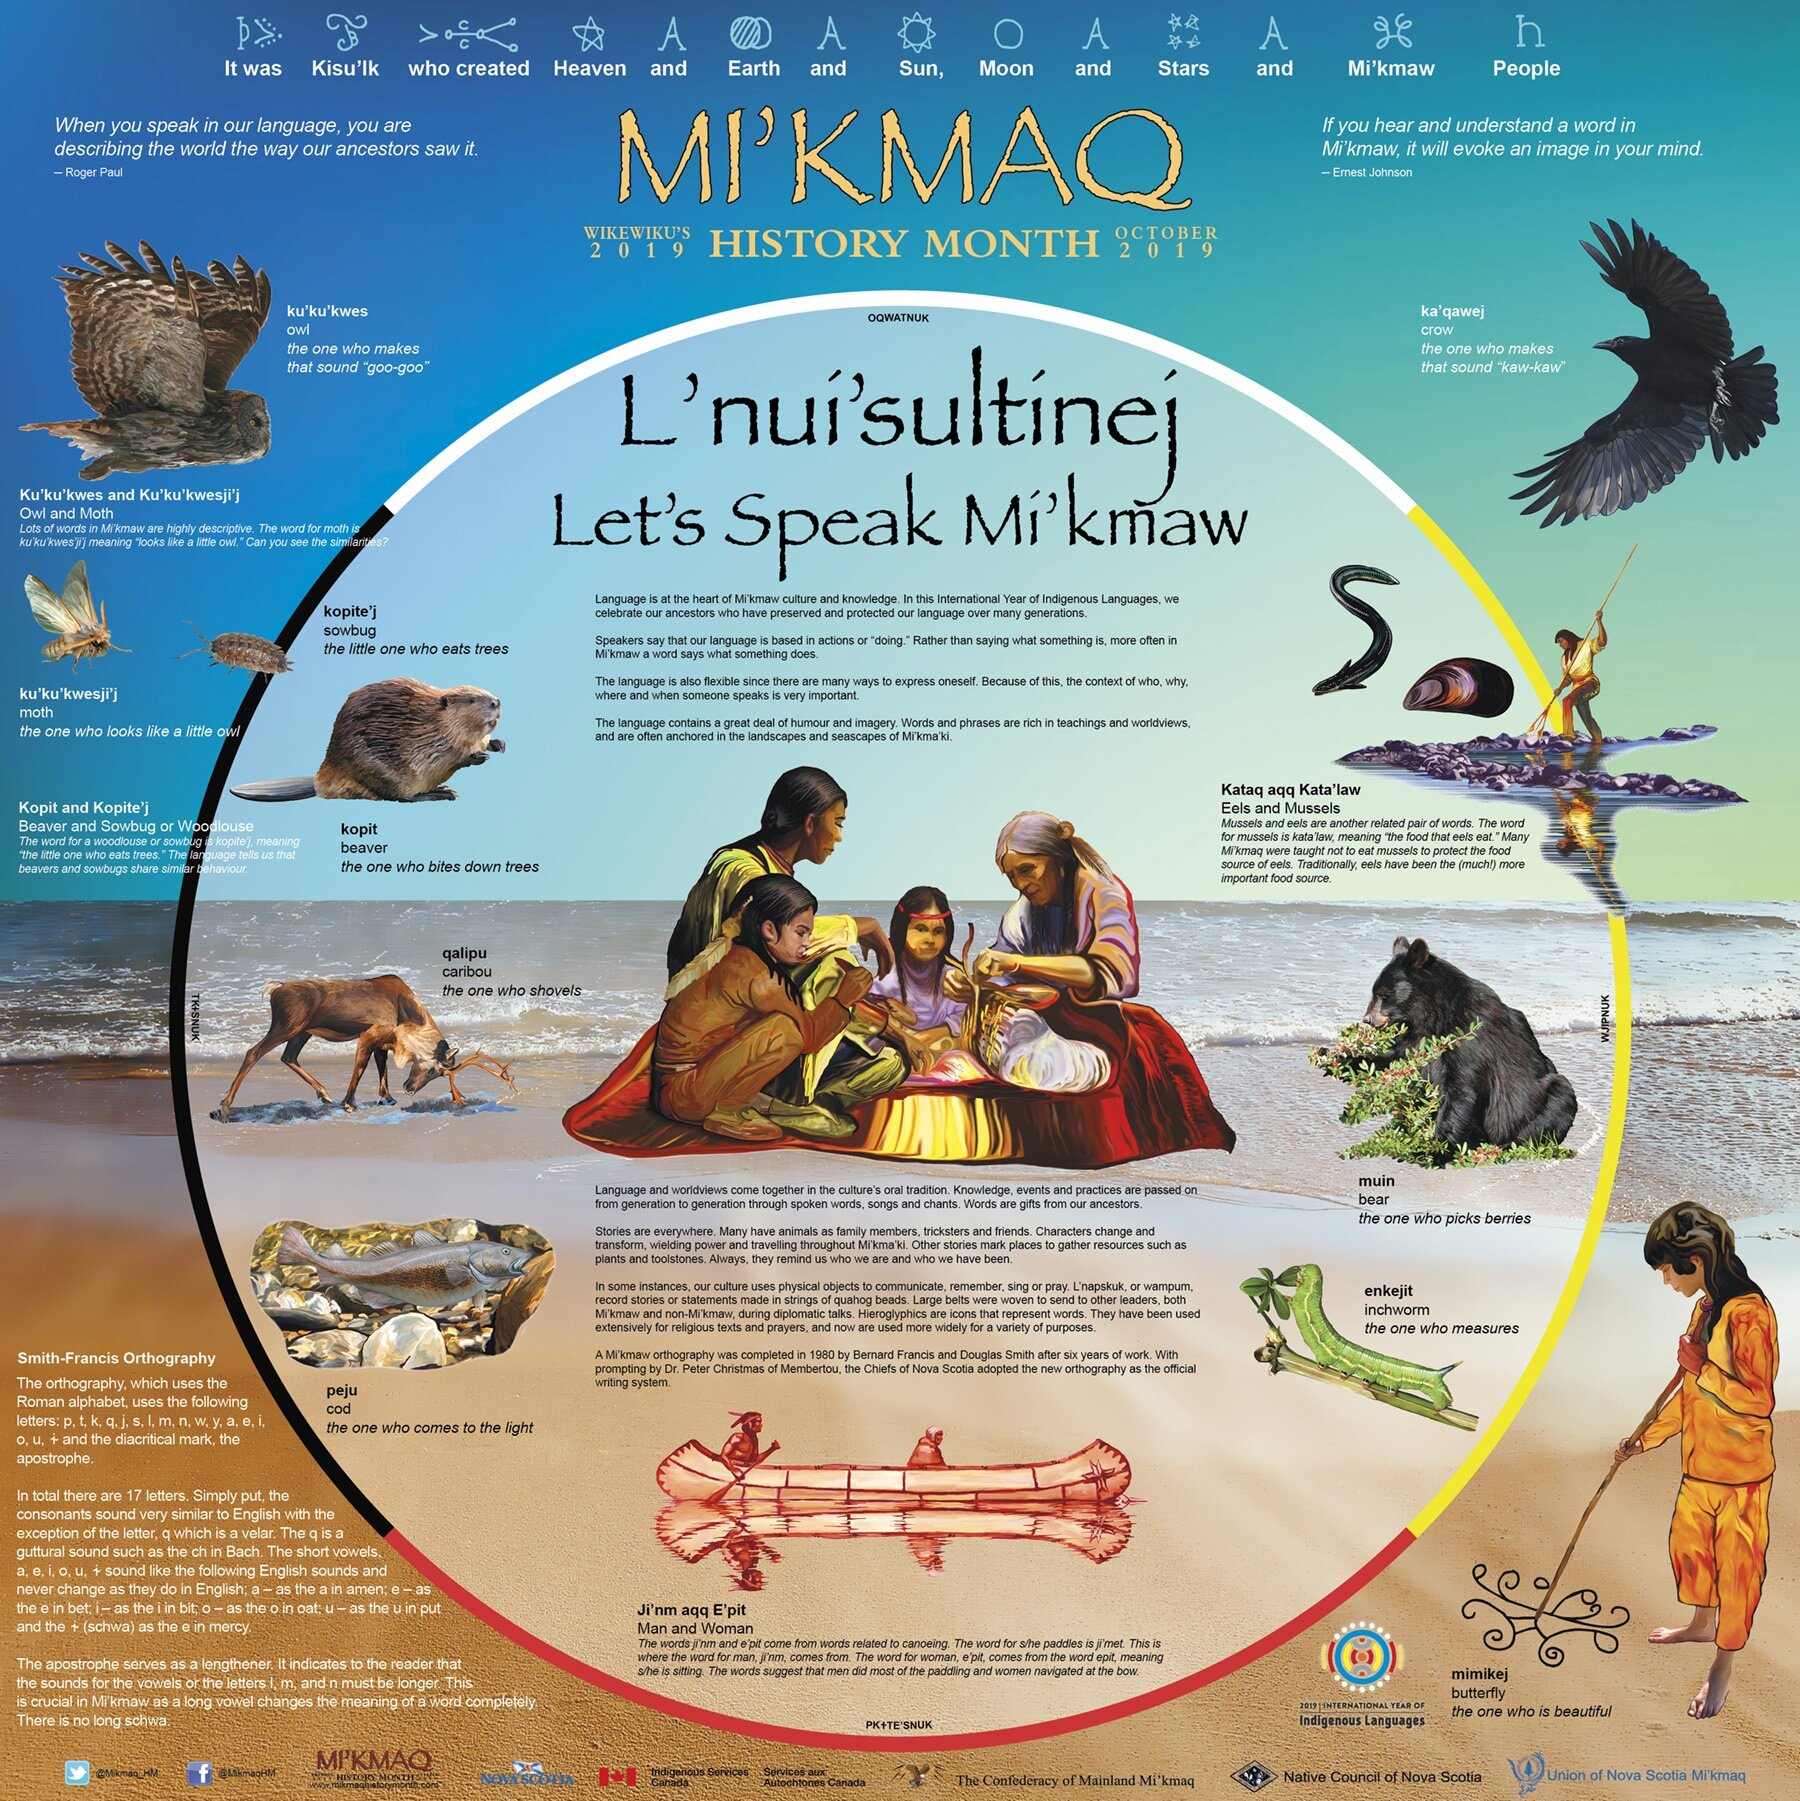 Mikmaq History Month Poster 2019. Learn more about the meaning behind the poster    here.